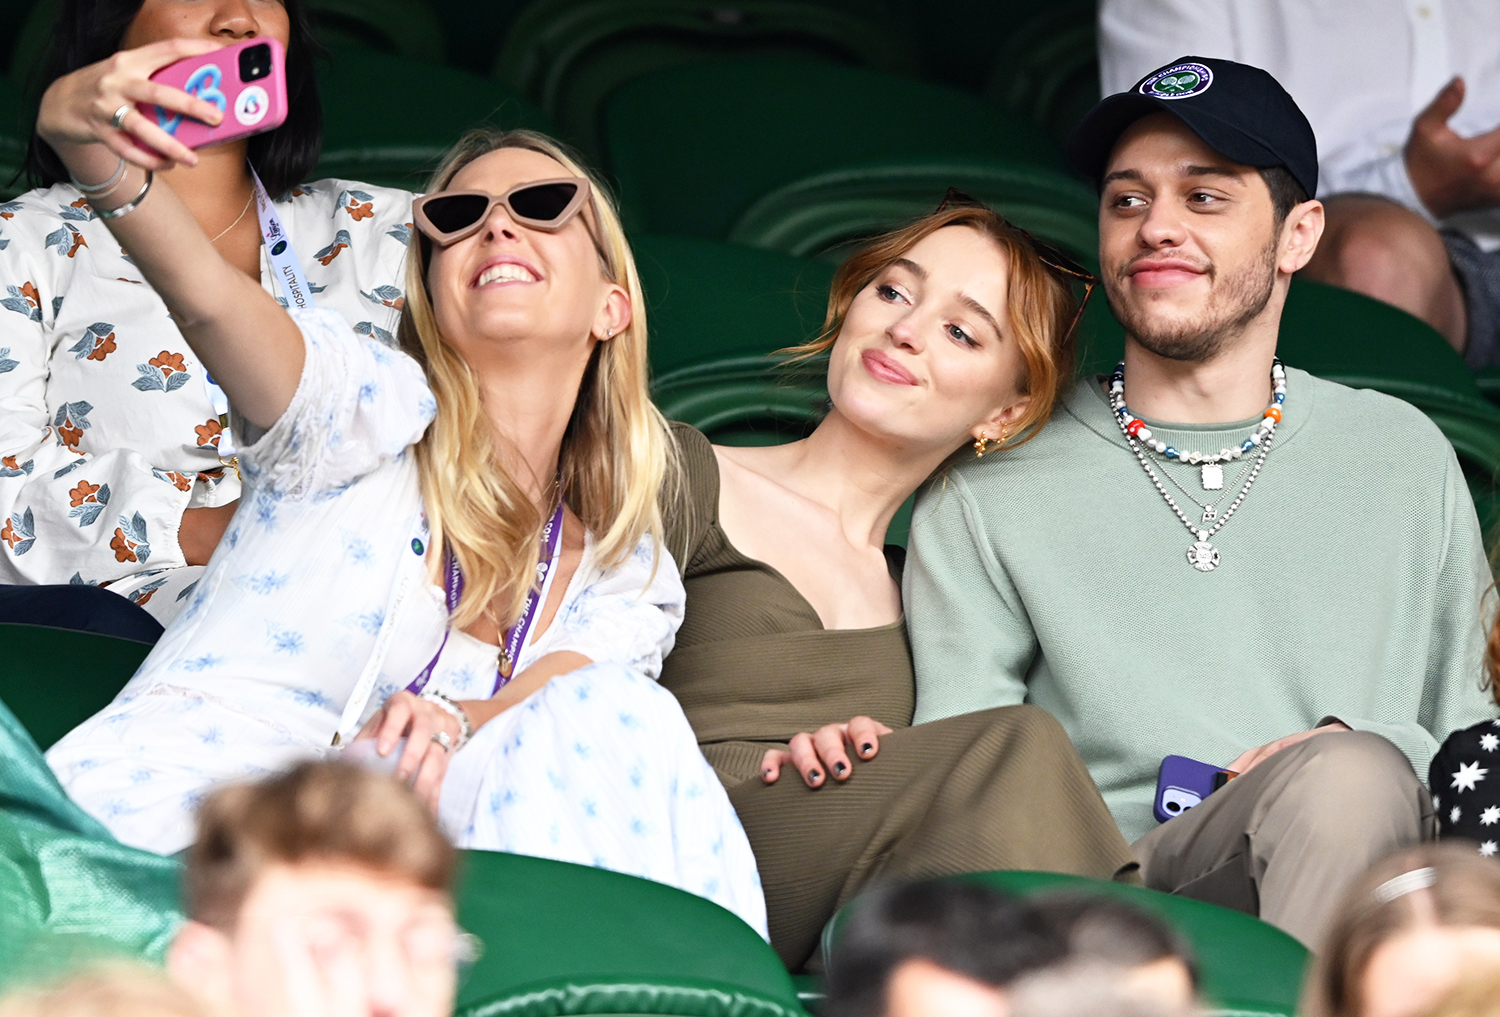 Phoebe Dynevor and Pete Davidson attend day 6 of the Wimbledon Tennis Championships at the All England Lawn Tennis and Croquet Club on July 03, 2021 in London, England.